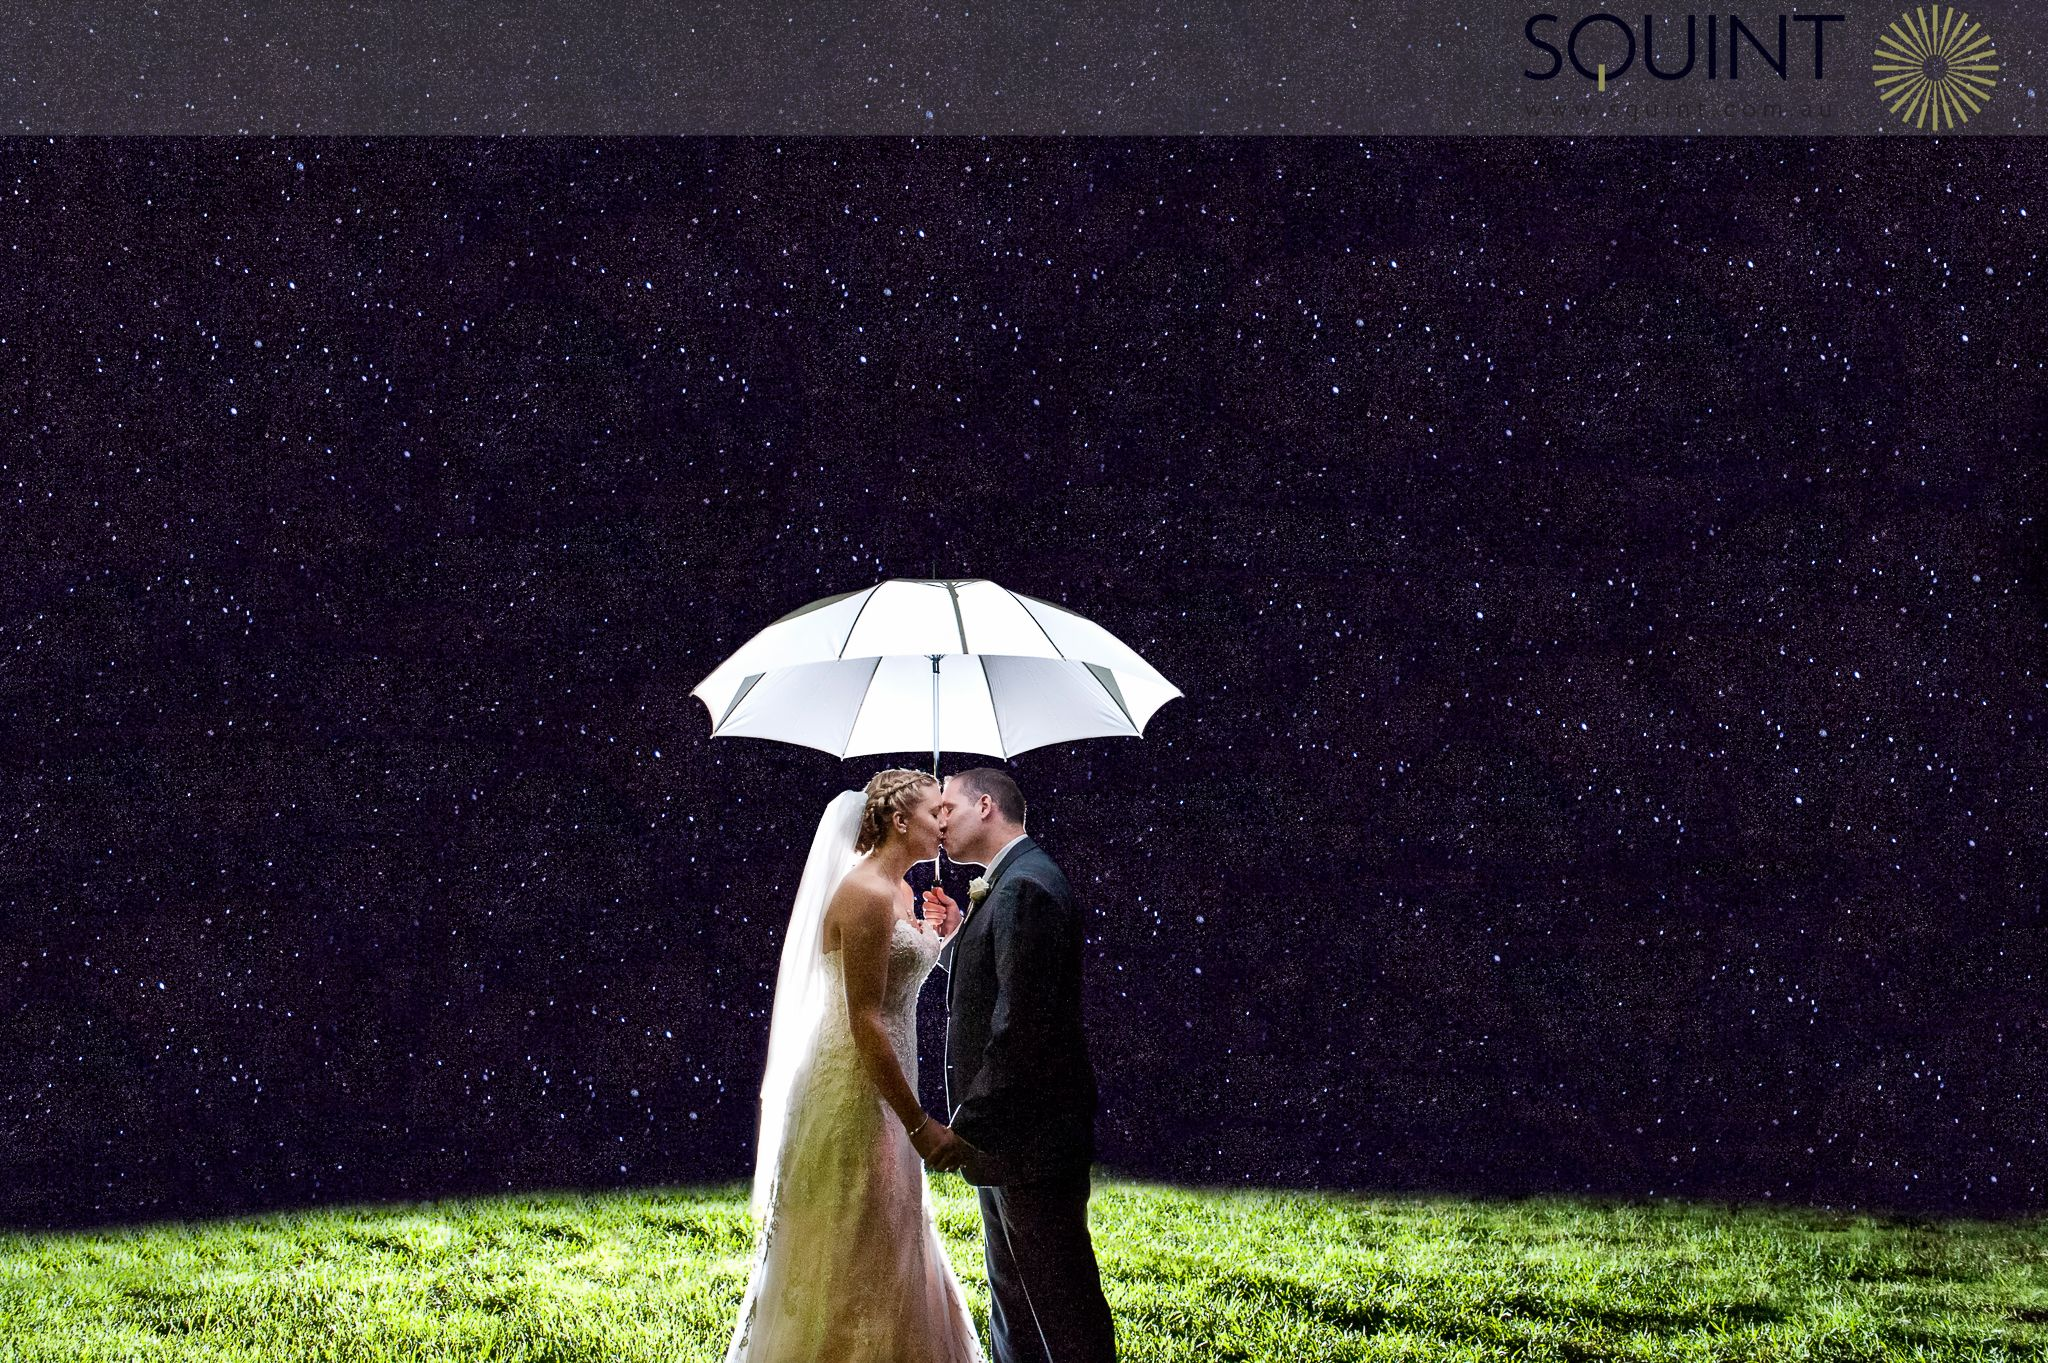 Spectacular bride and groom under umbrella in the rain at night